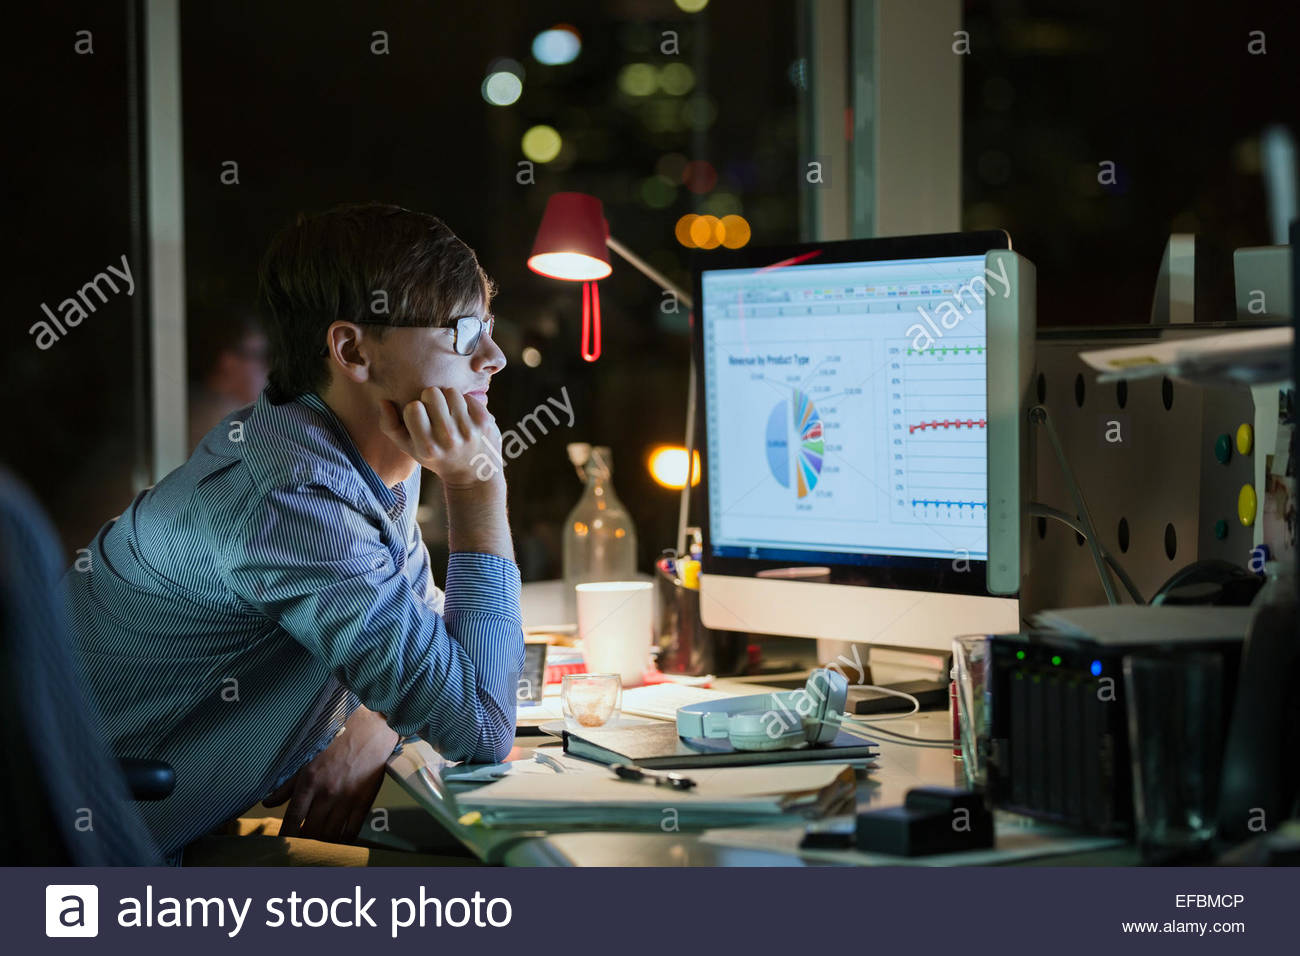 Businessman working at late at computer in office - Stock Image